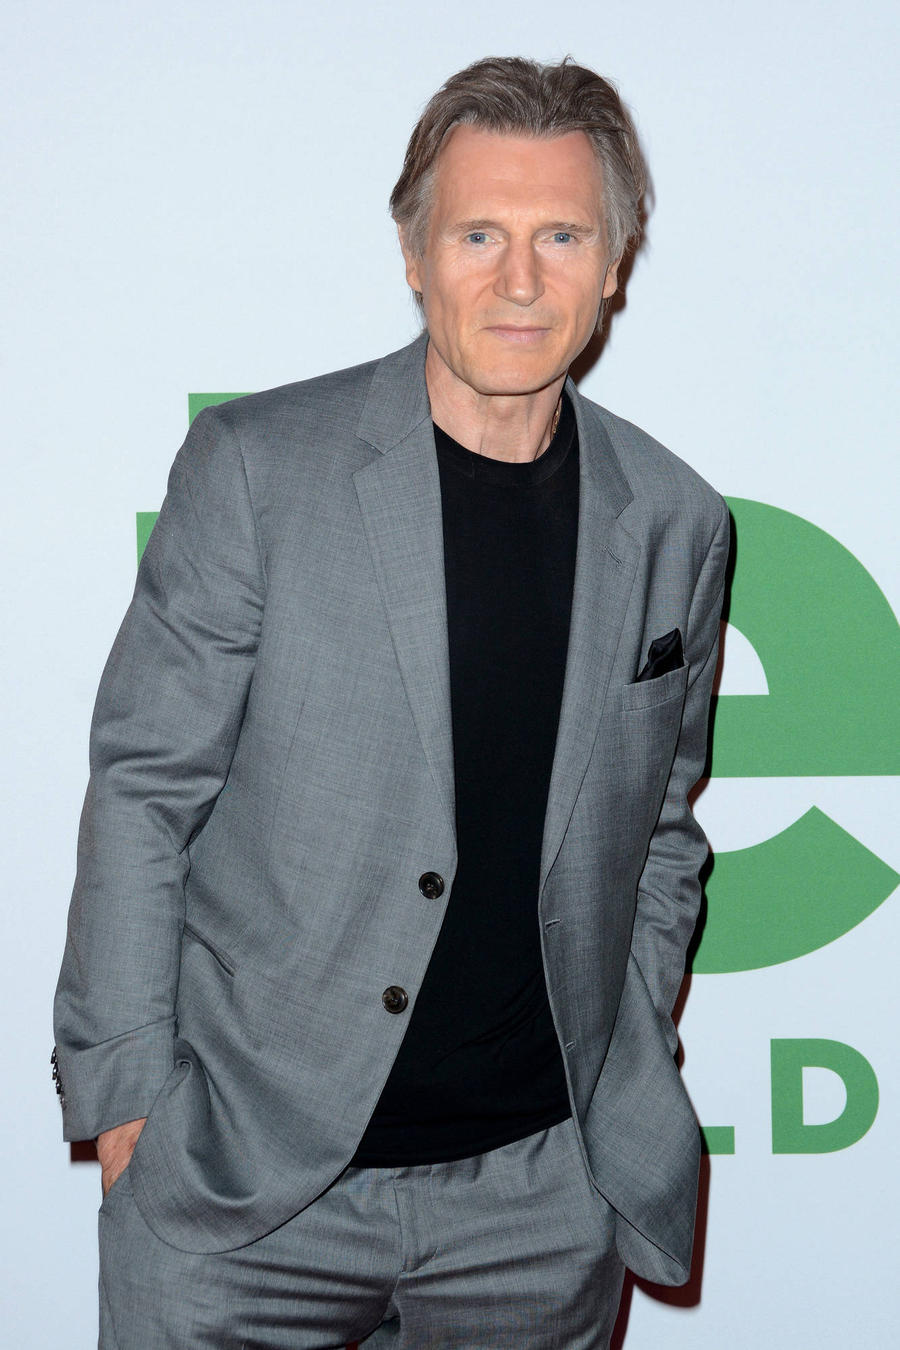 Liam Neeson No Longer Boxing For Fun